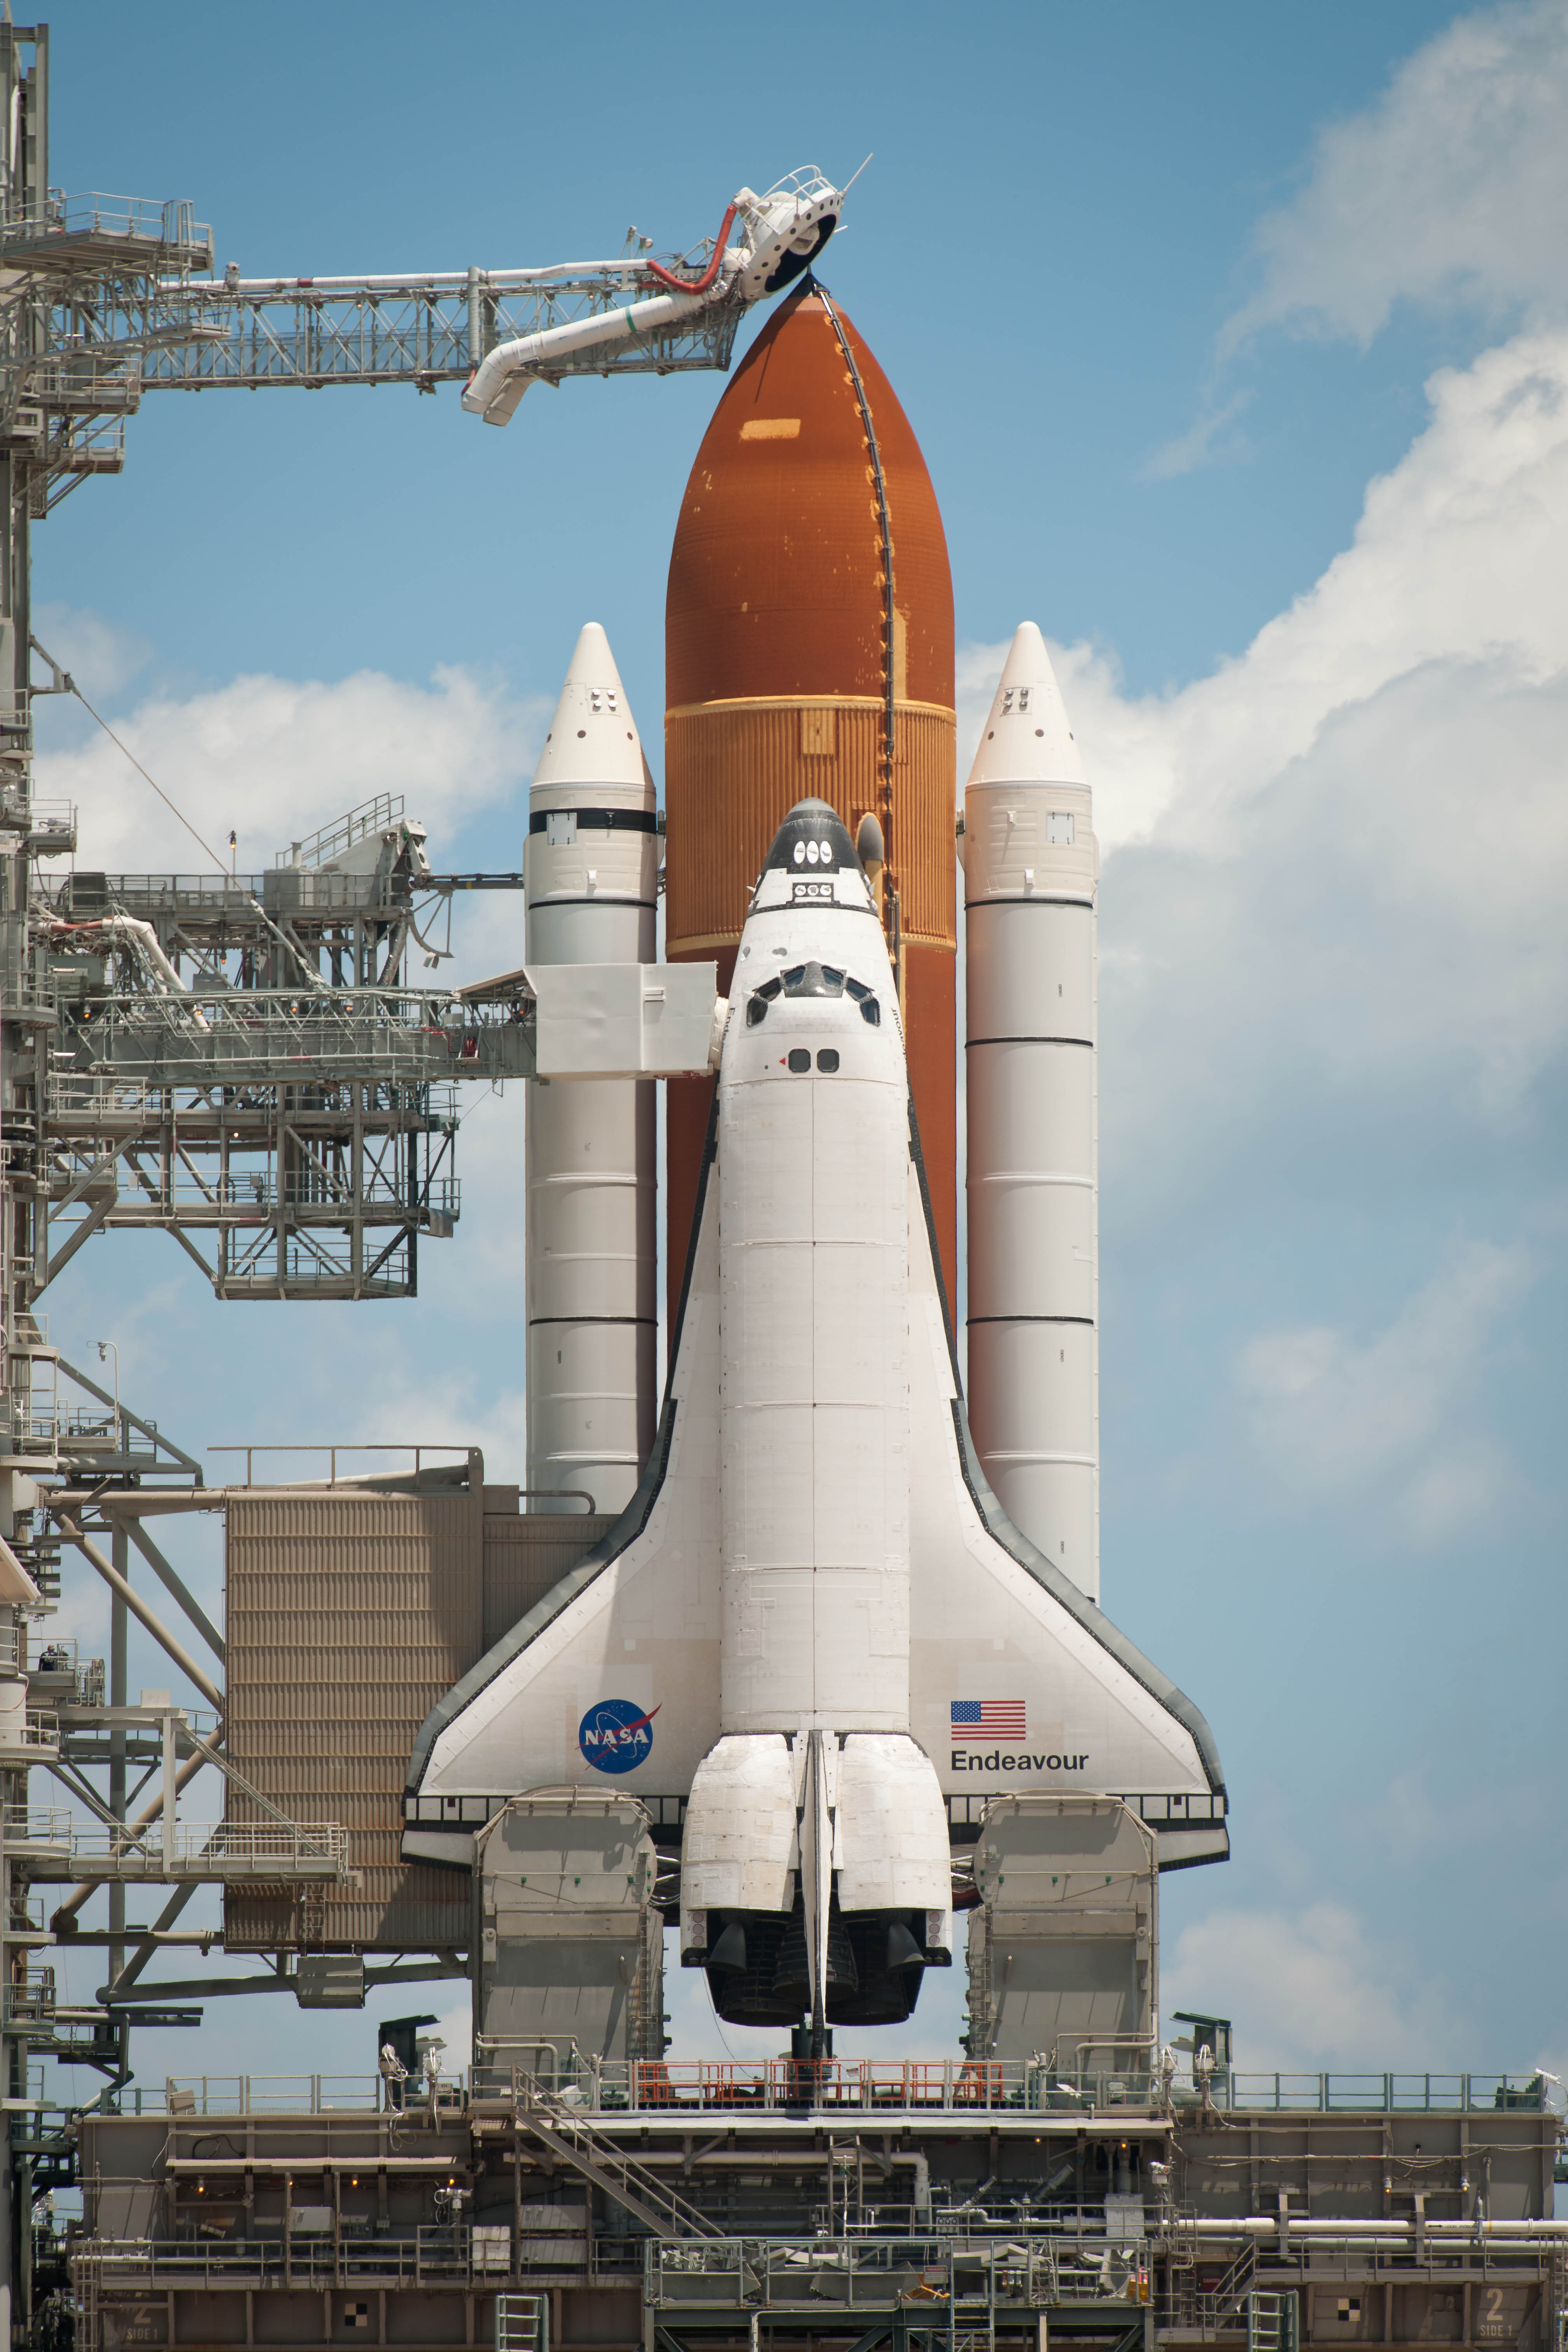 NASA Shuttle Launch Endeavor (page 2) - Pics about space